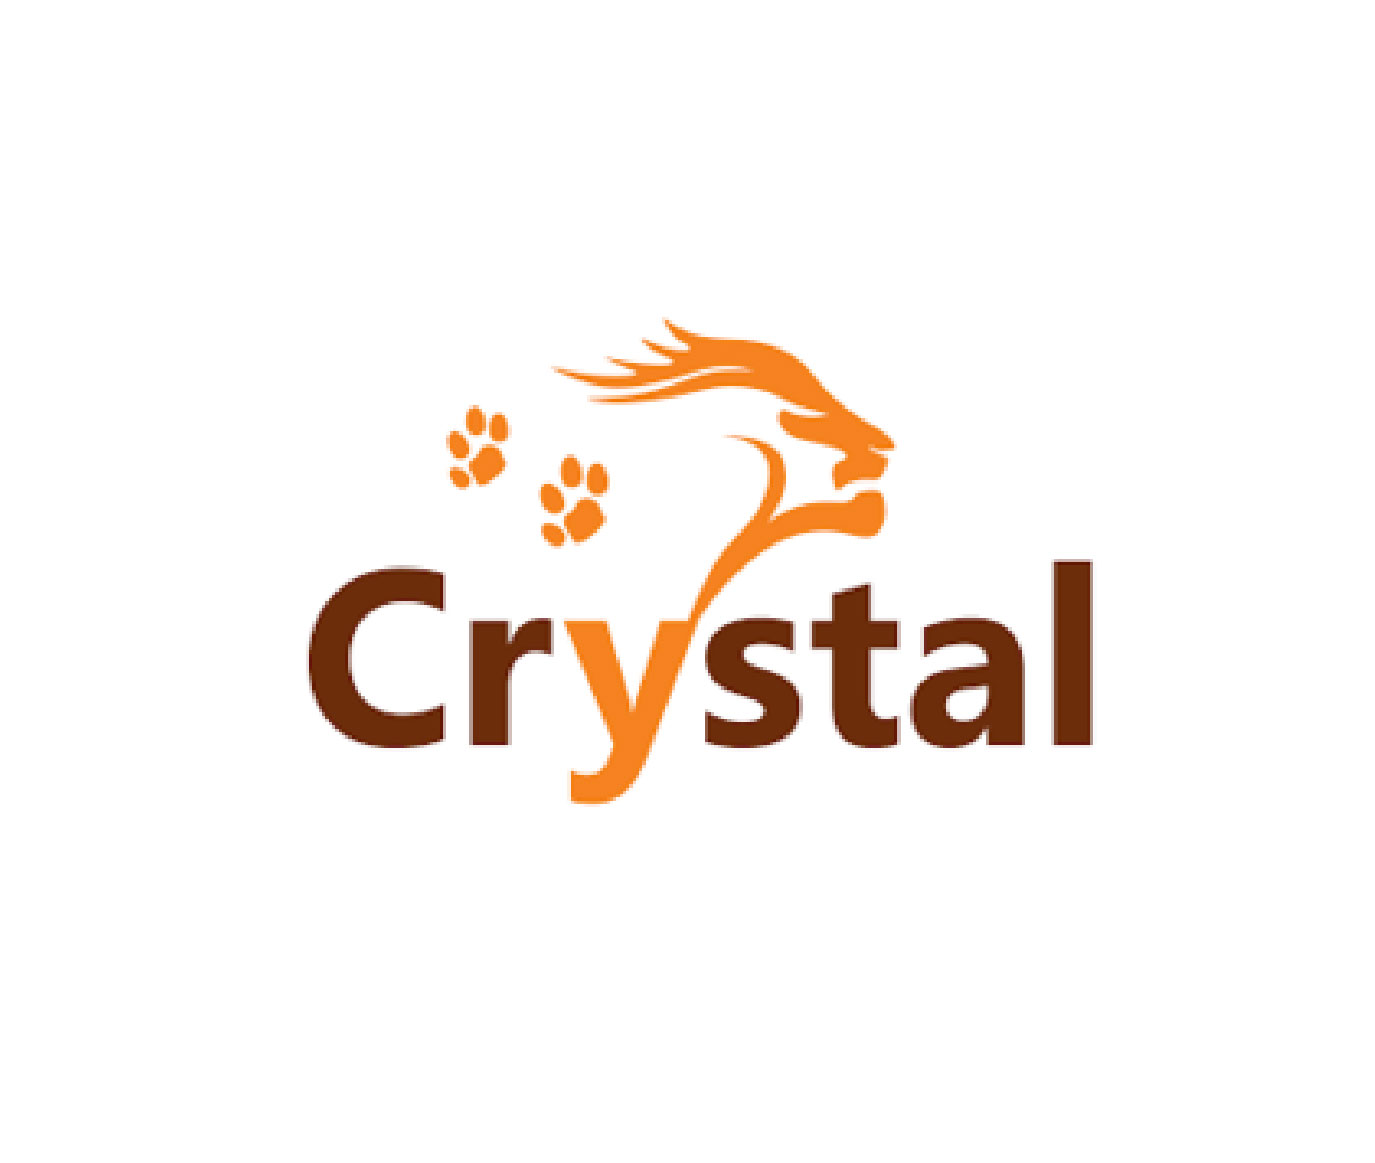 tactive consulting - crystal logo resize 6